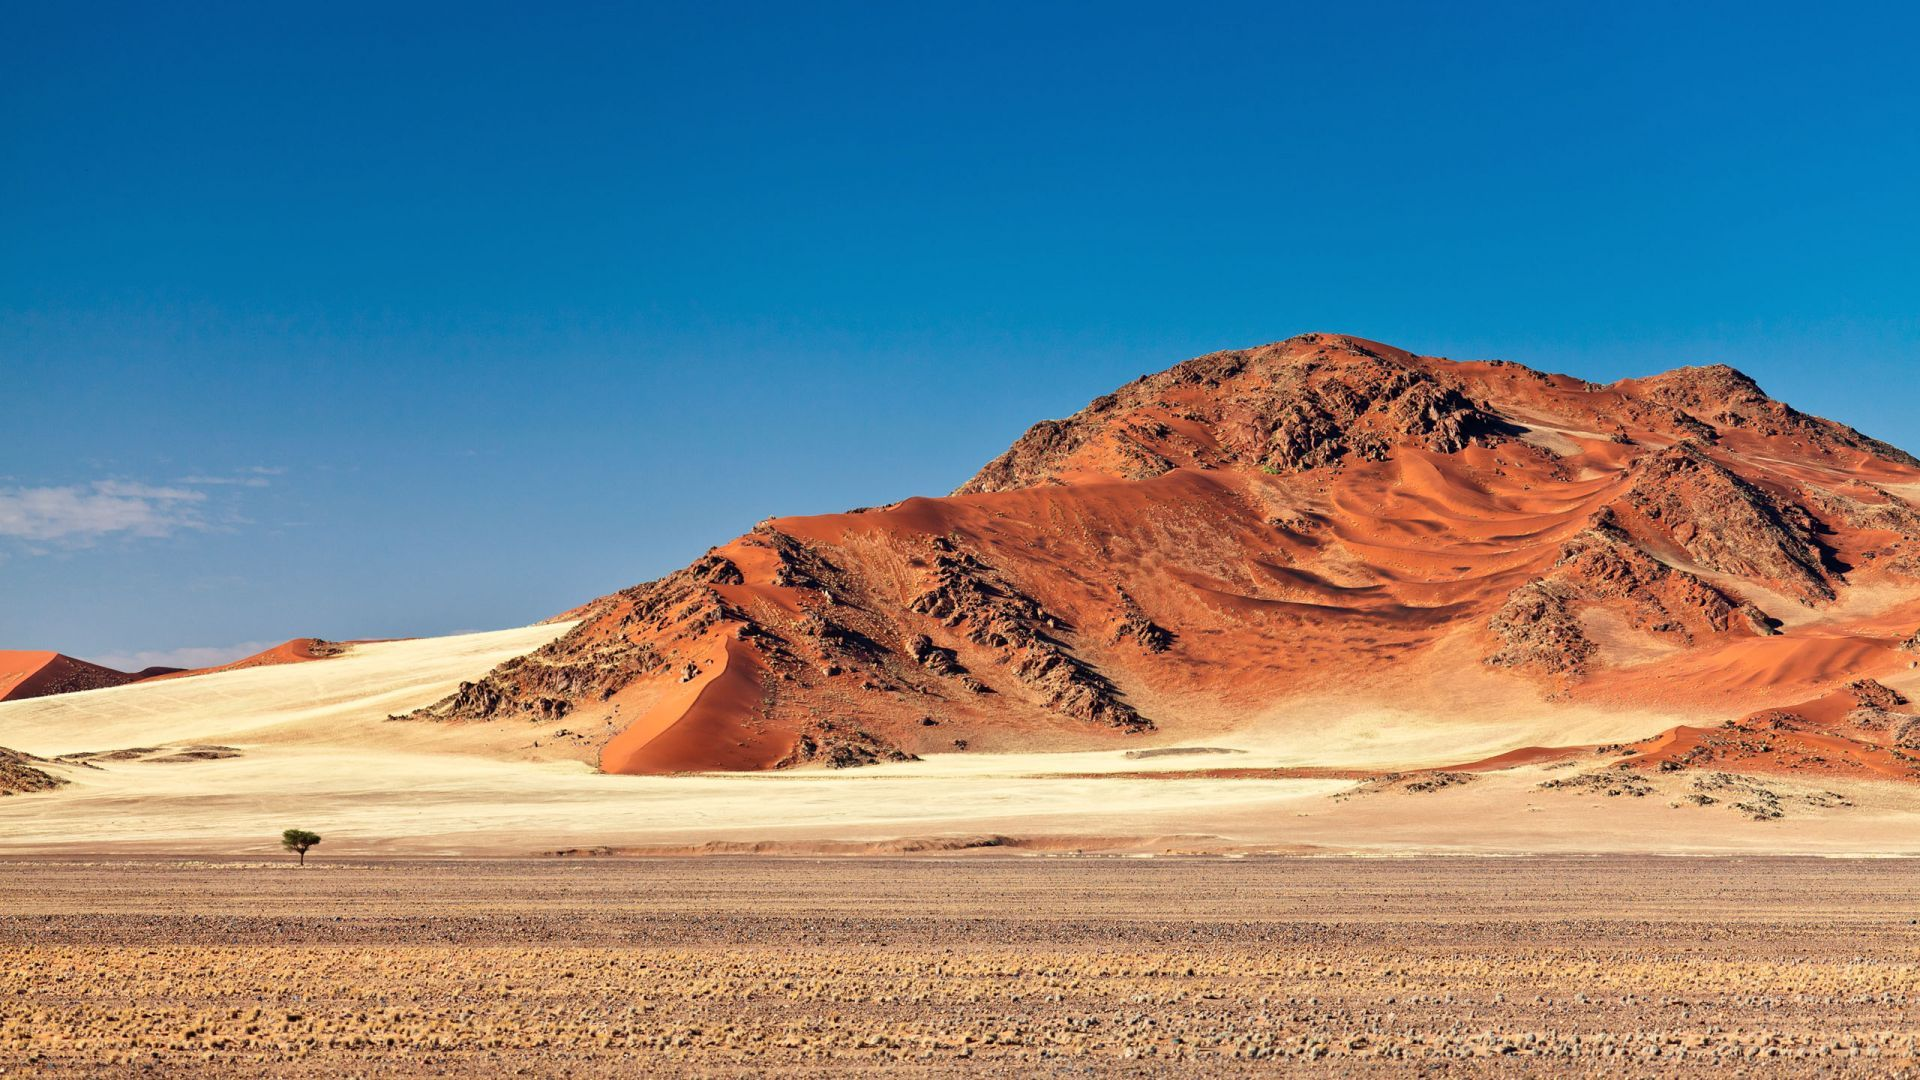 Syrian Hd Landscape Nature Desktop Wallpaper Namib Desert